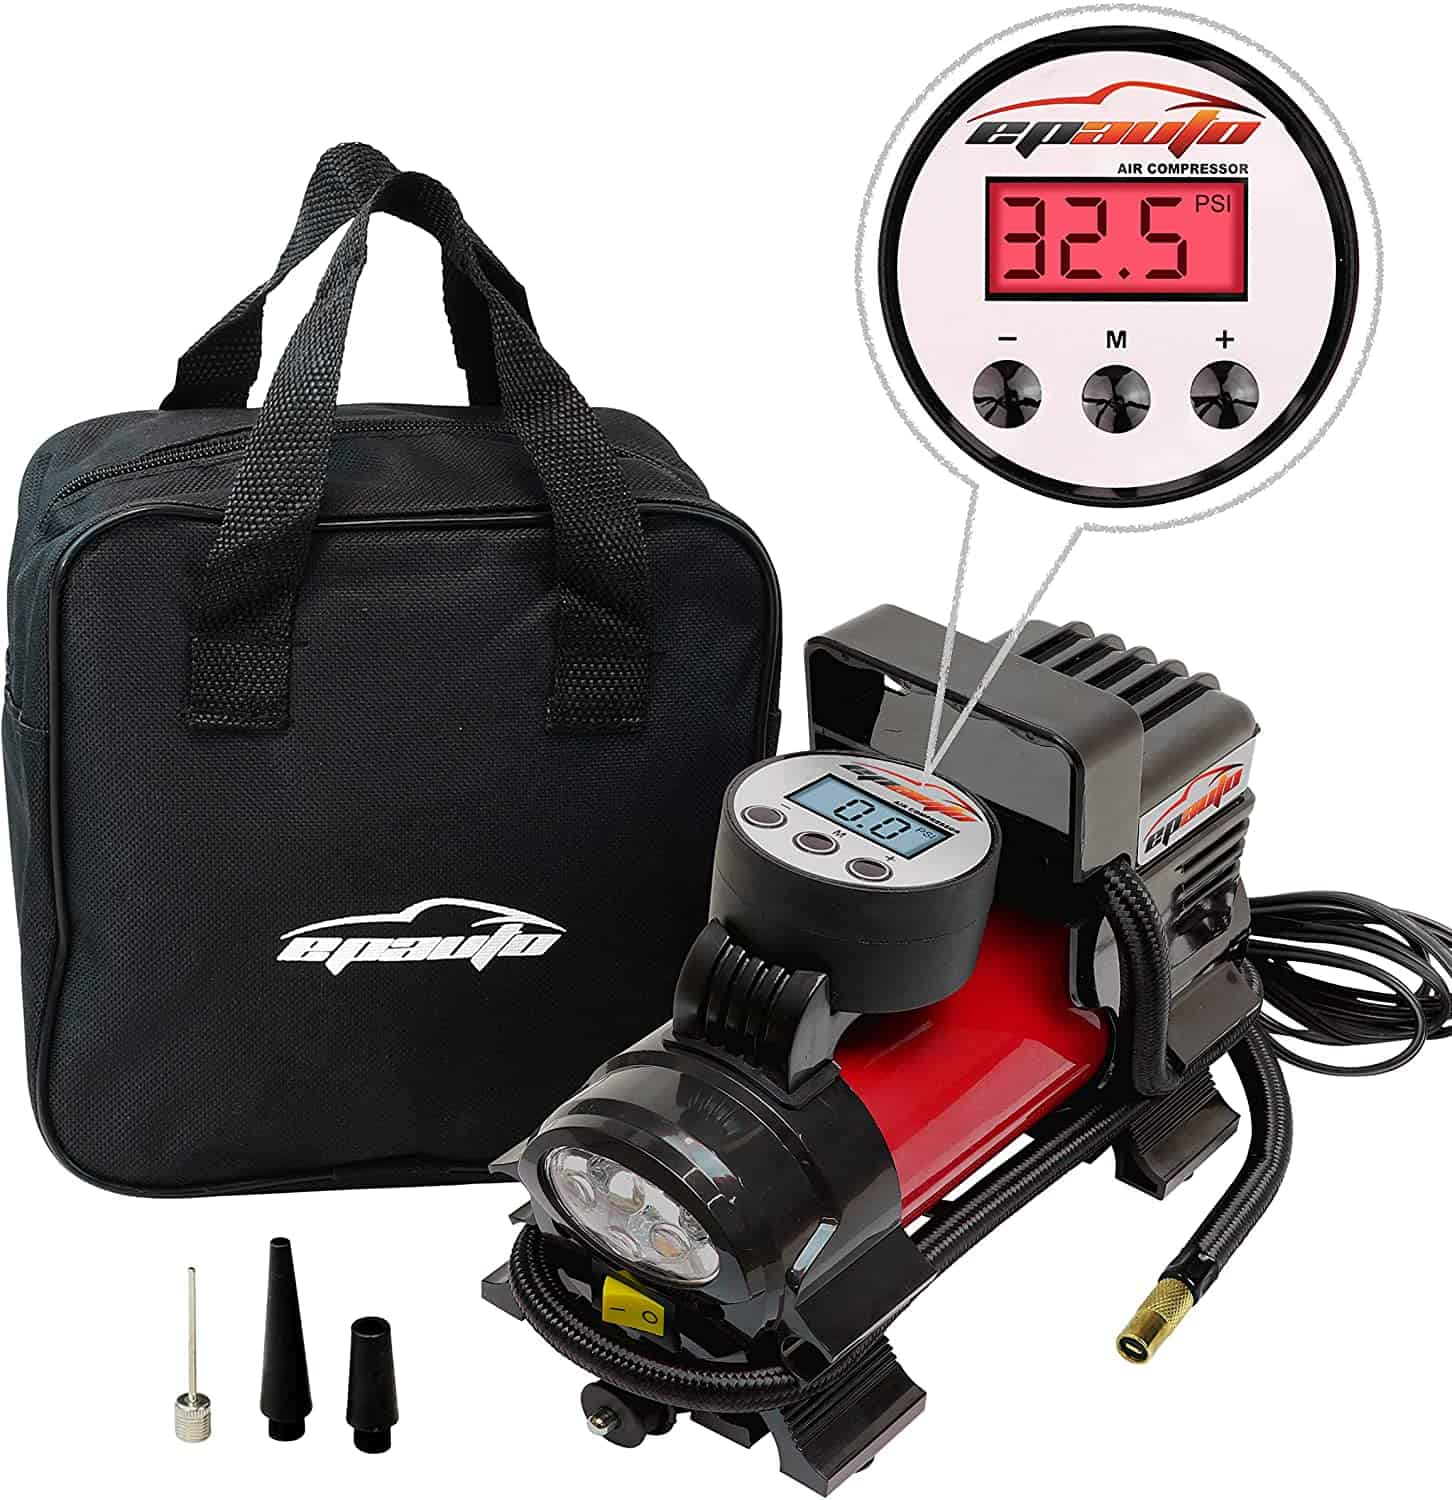 gifts for car loving dads EPAUTO 12V DC Portable Air Compressor Pump With Pressure Gauge